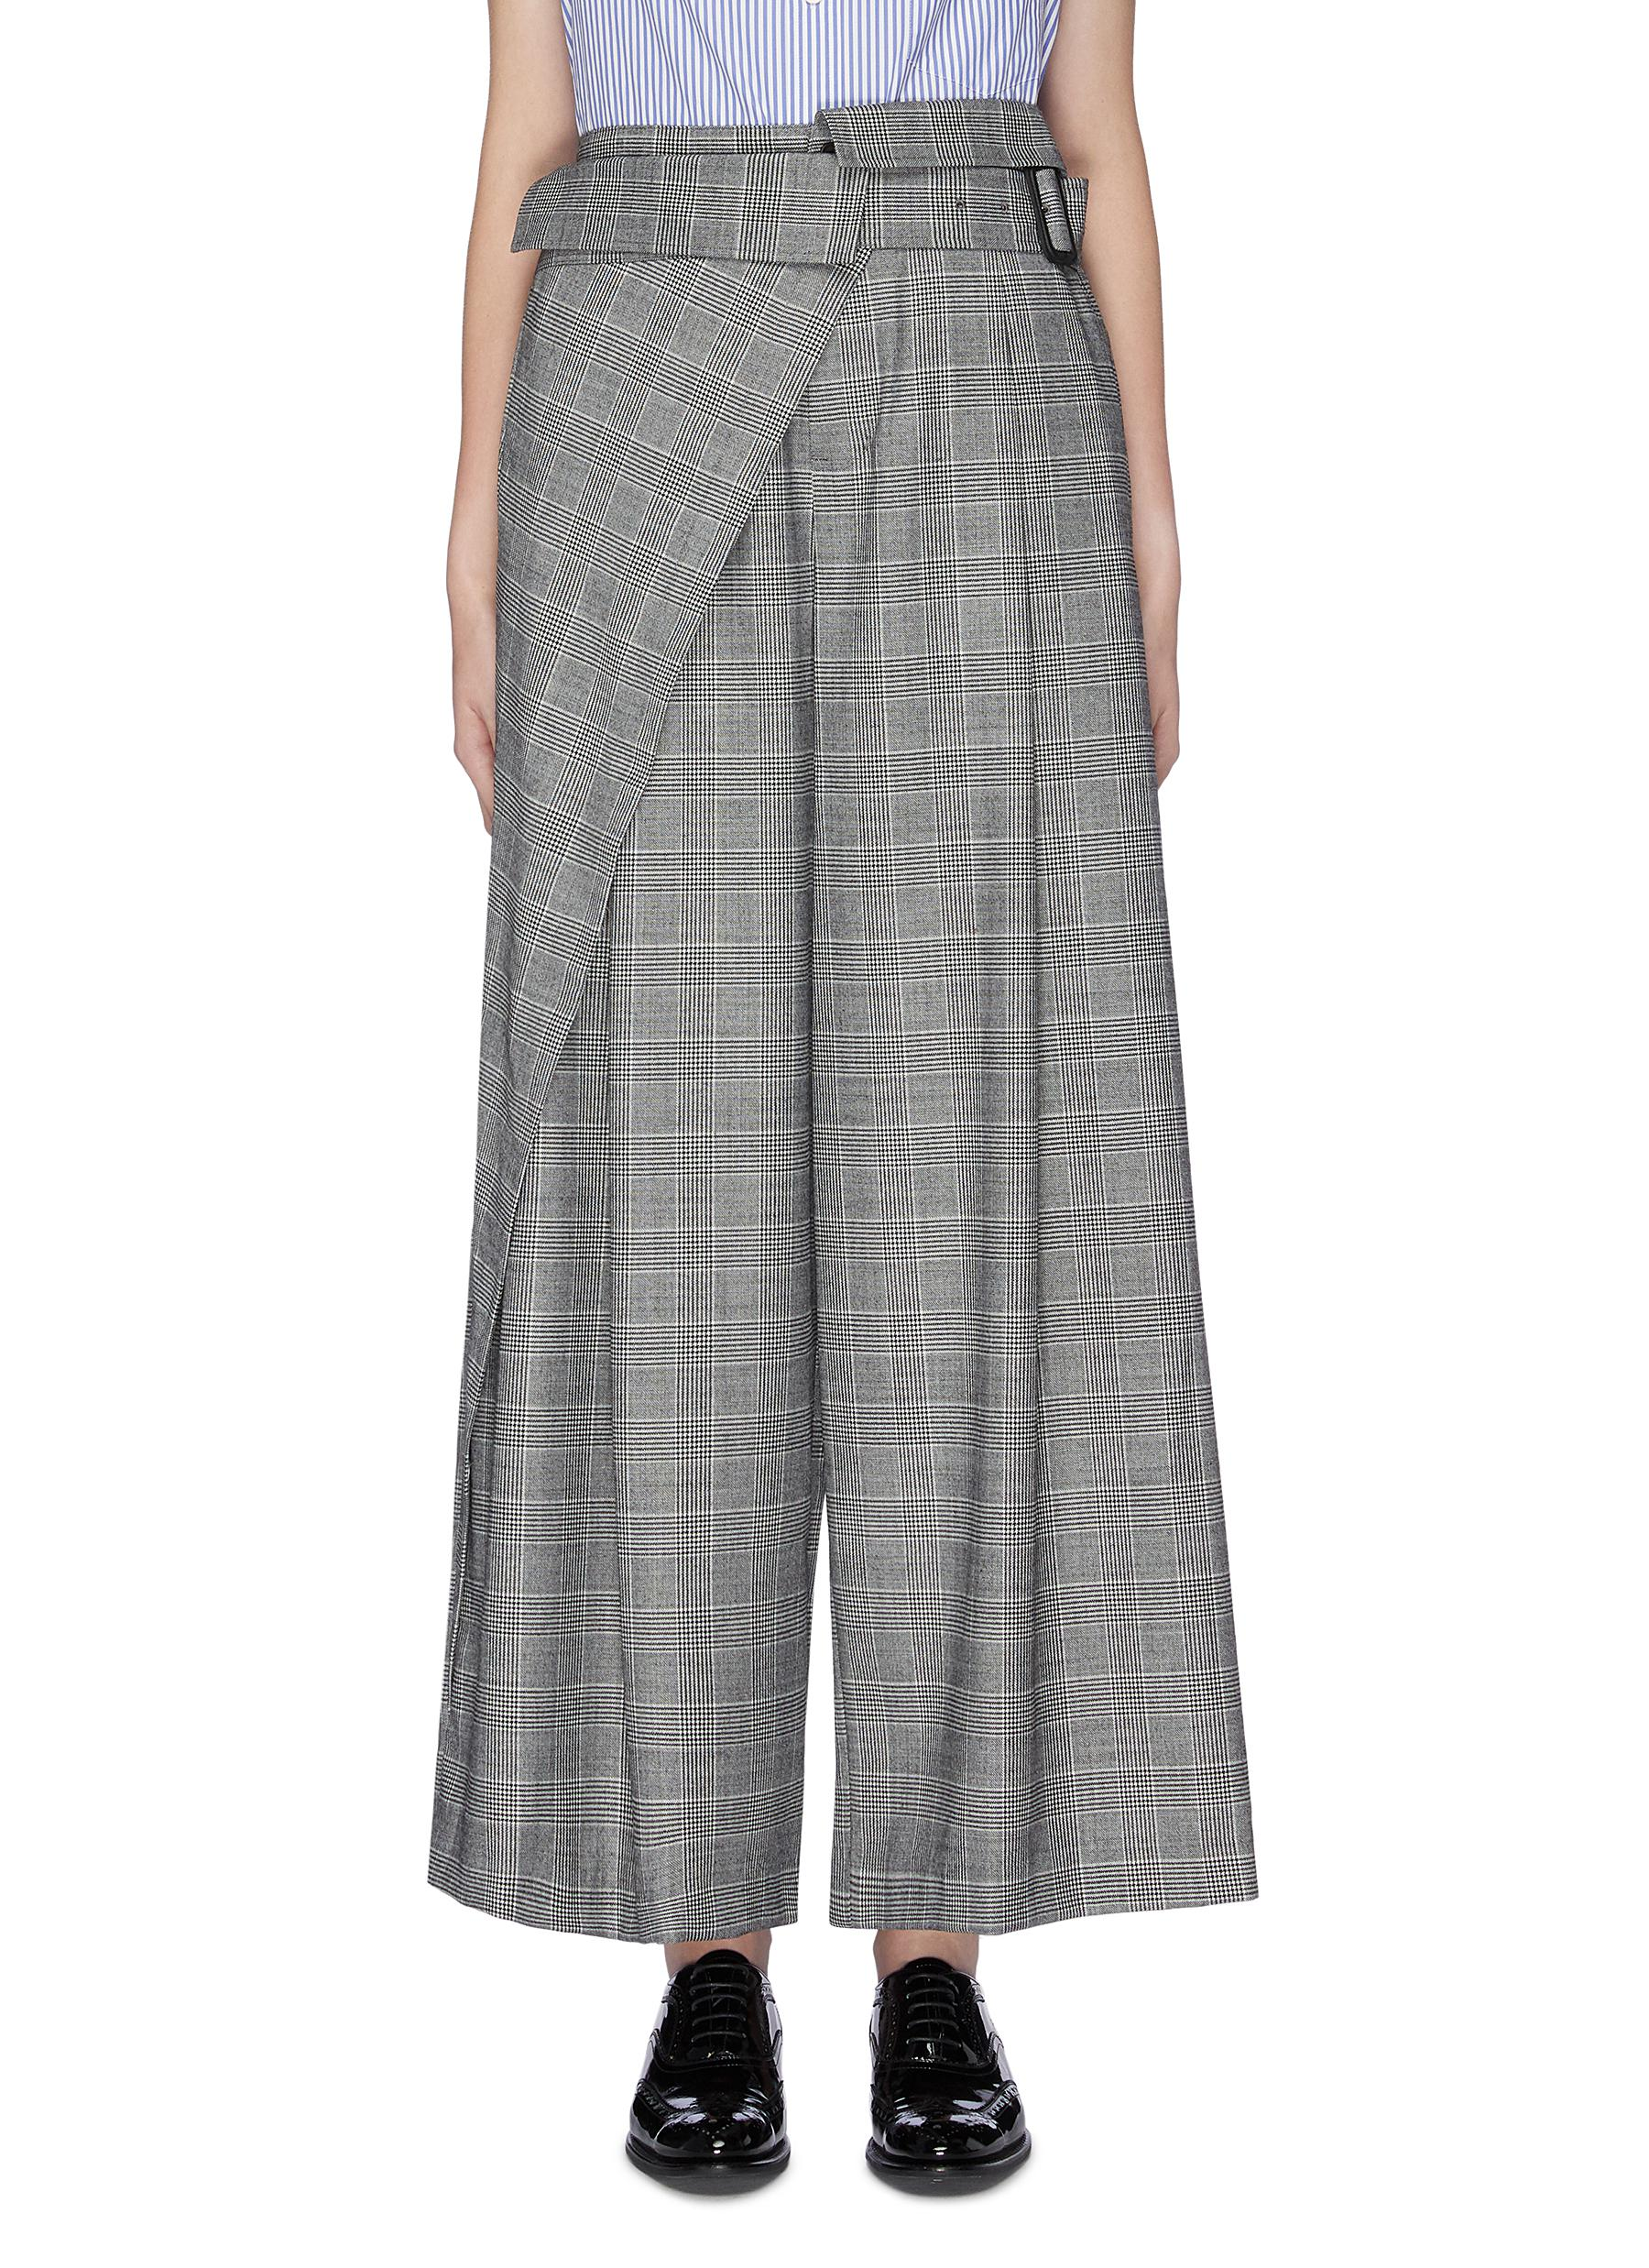 Belted layered panel check plaid wide leg pants by The Keiji